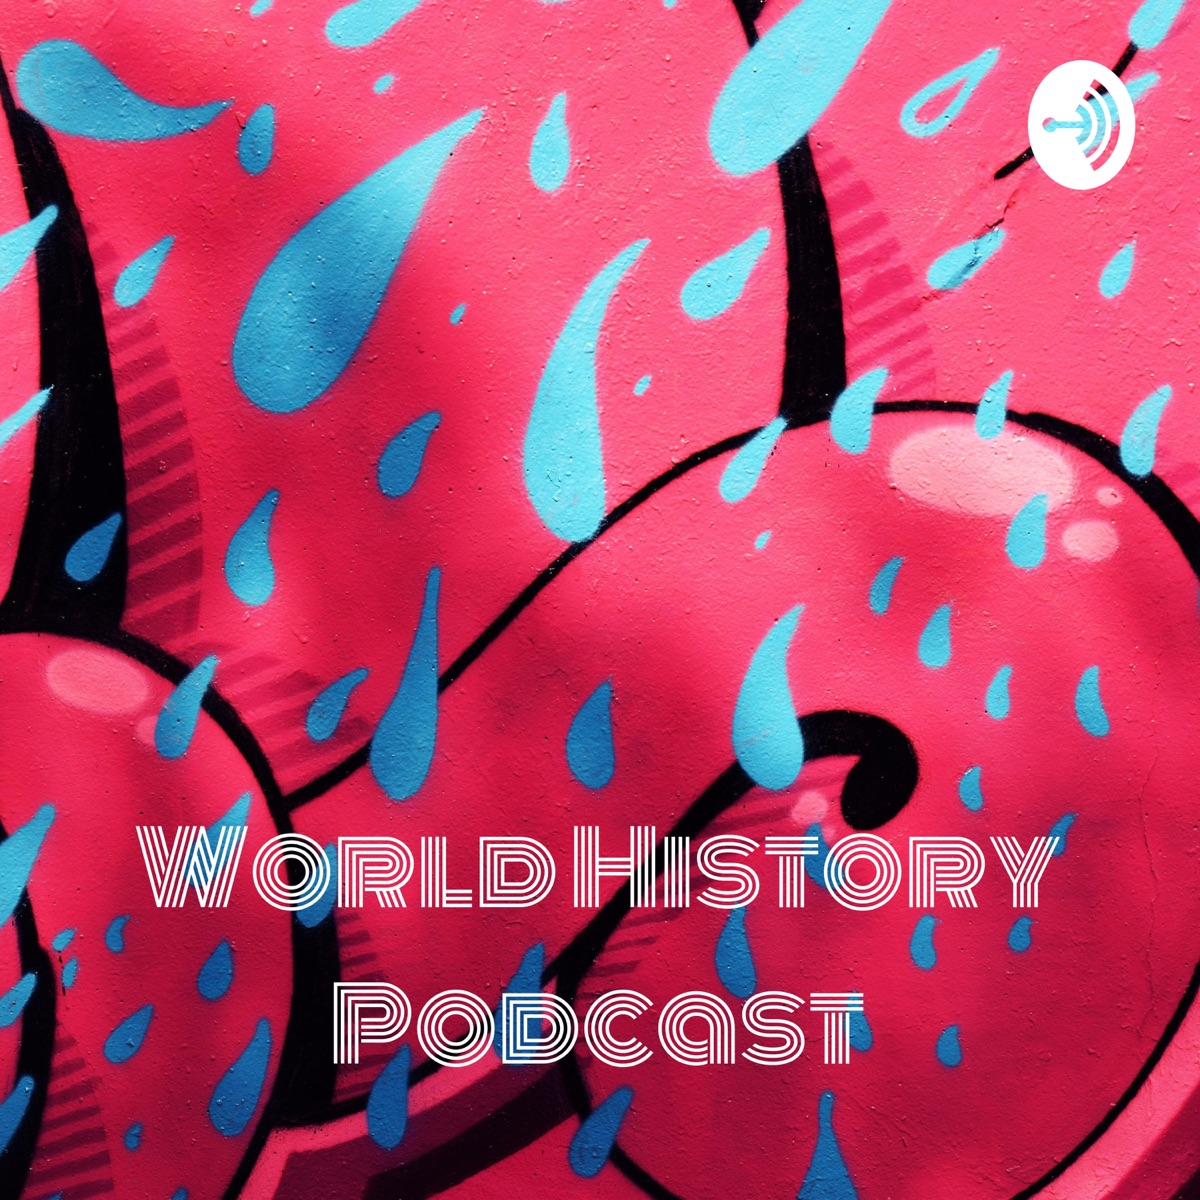 World History Podcast: Was the French Revolution a Success?